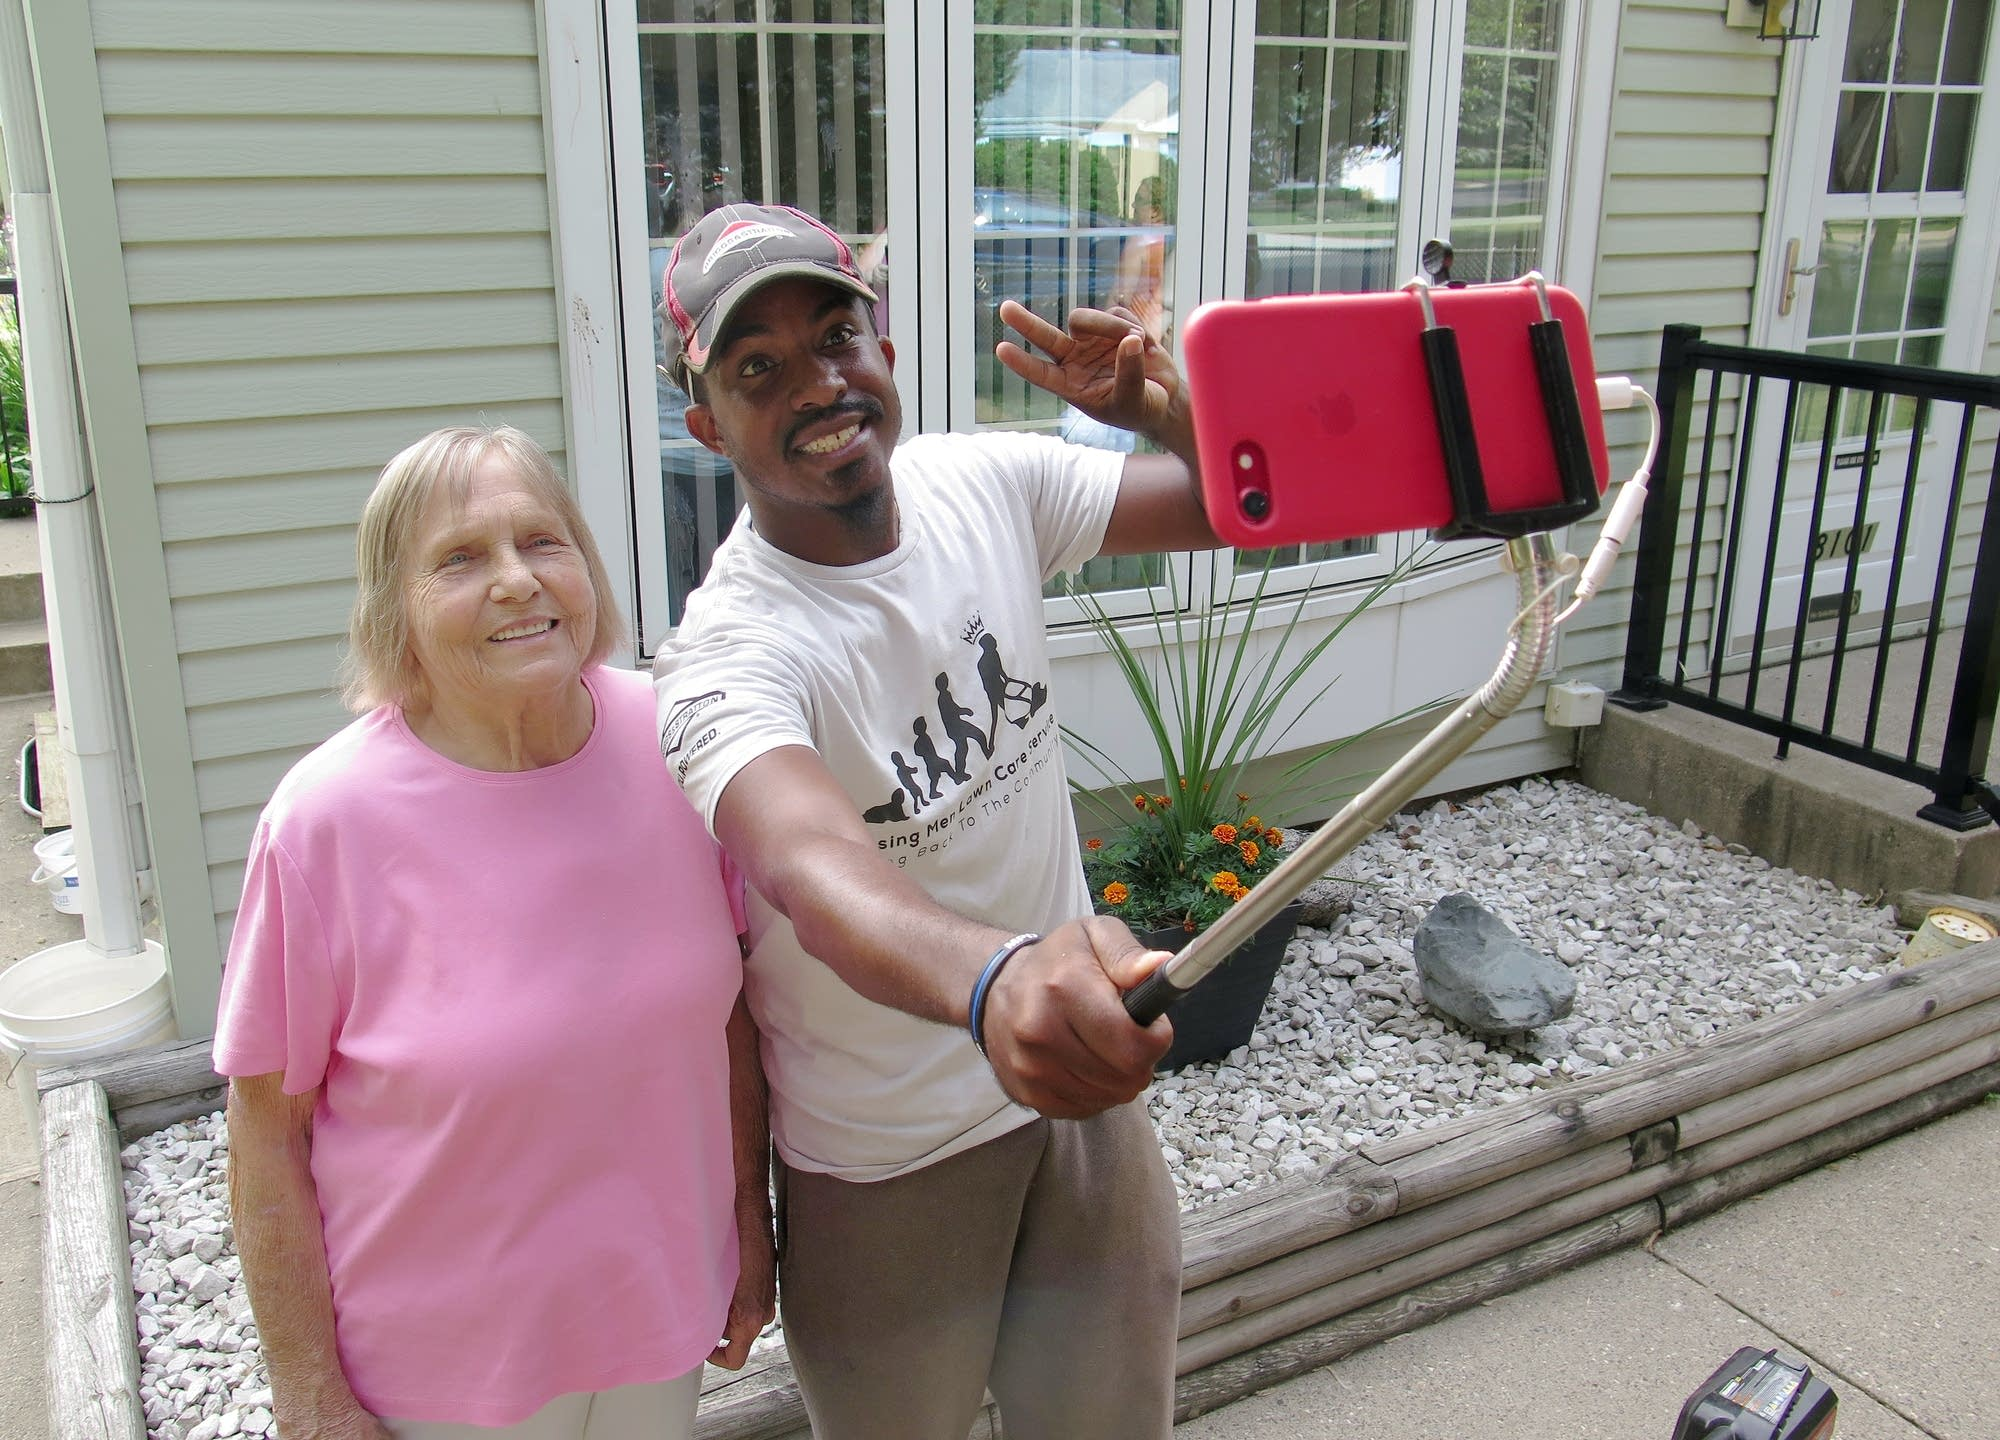 Charlene Frederick-Schrupp posed with Rodney Smith after he mowed her lawn.